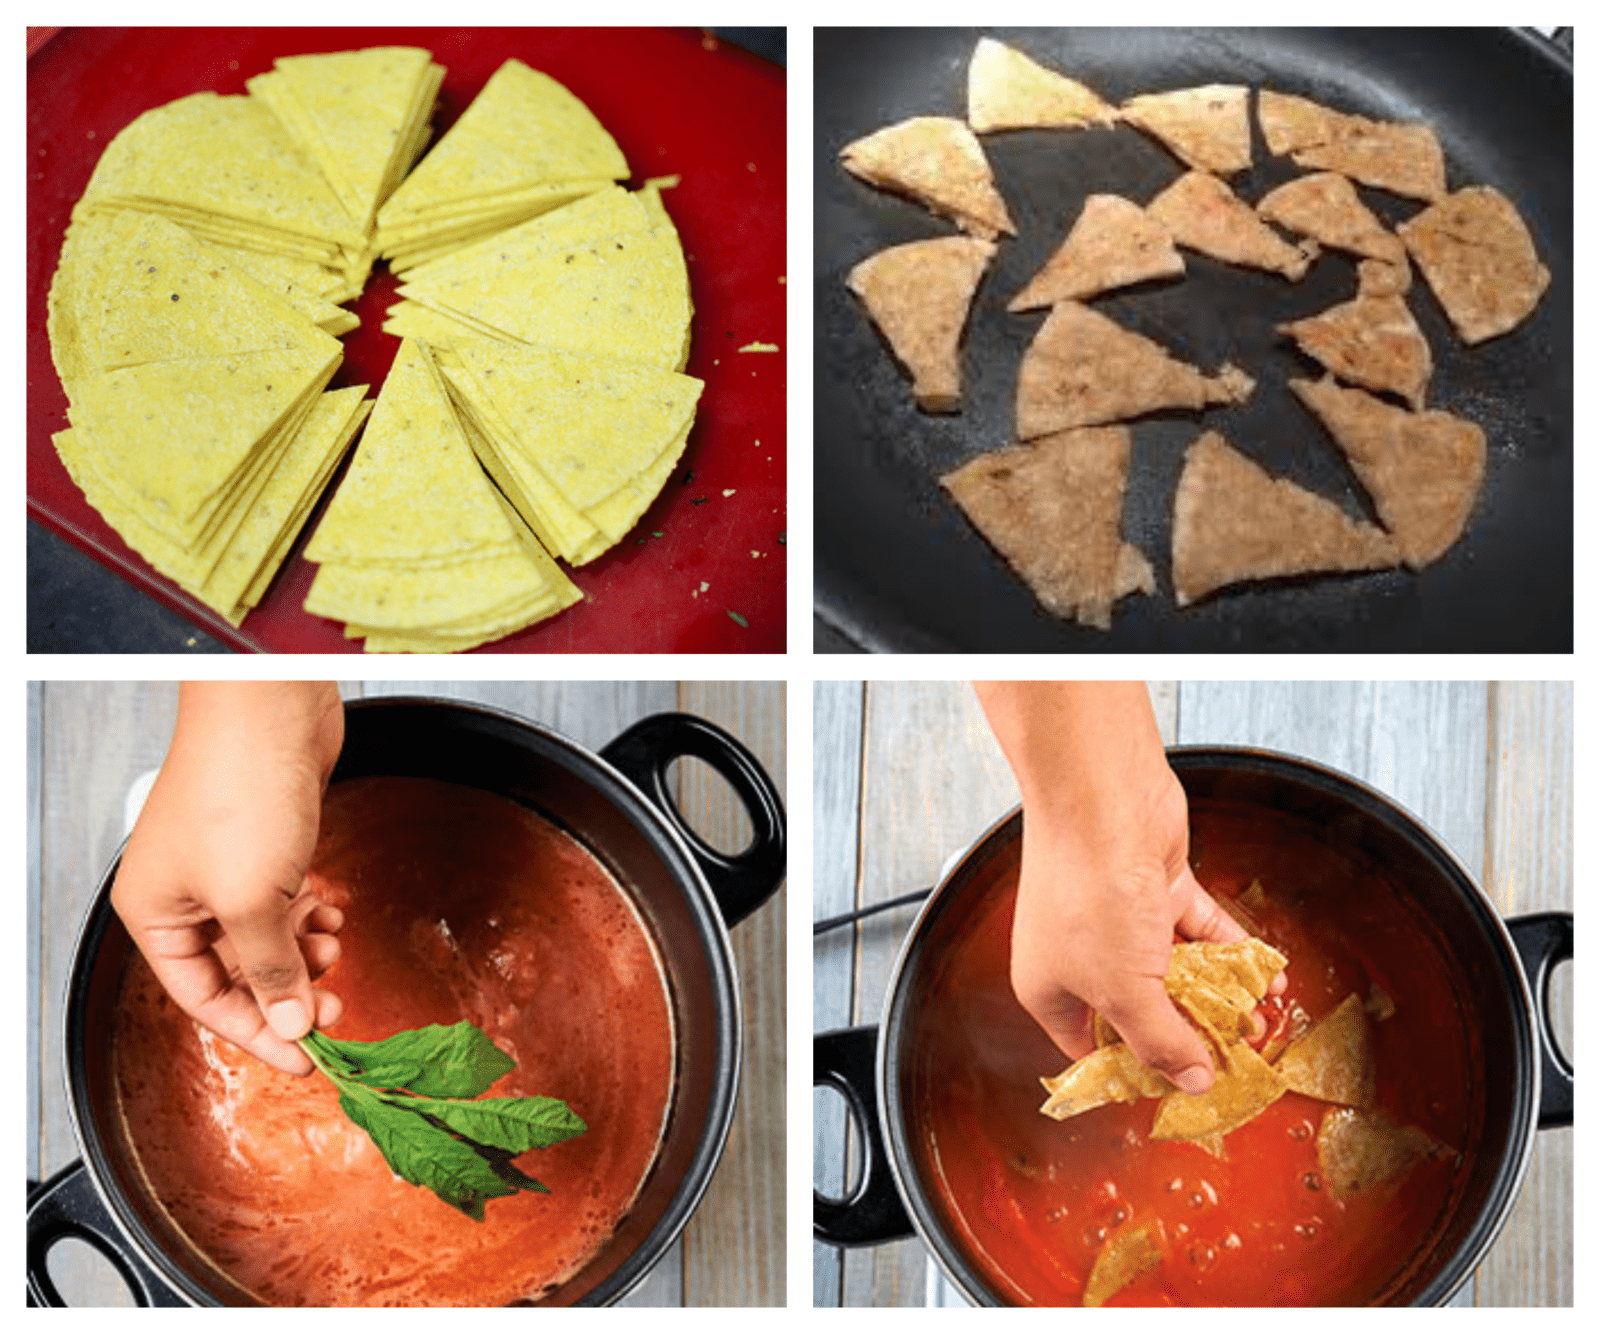 How to cook tortillas in sauce